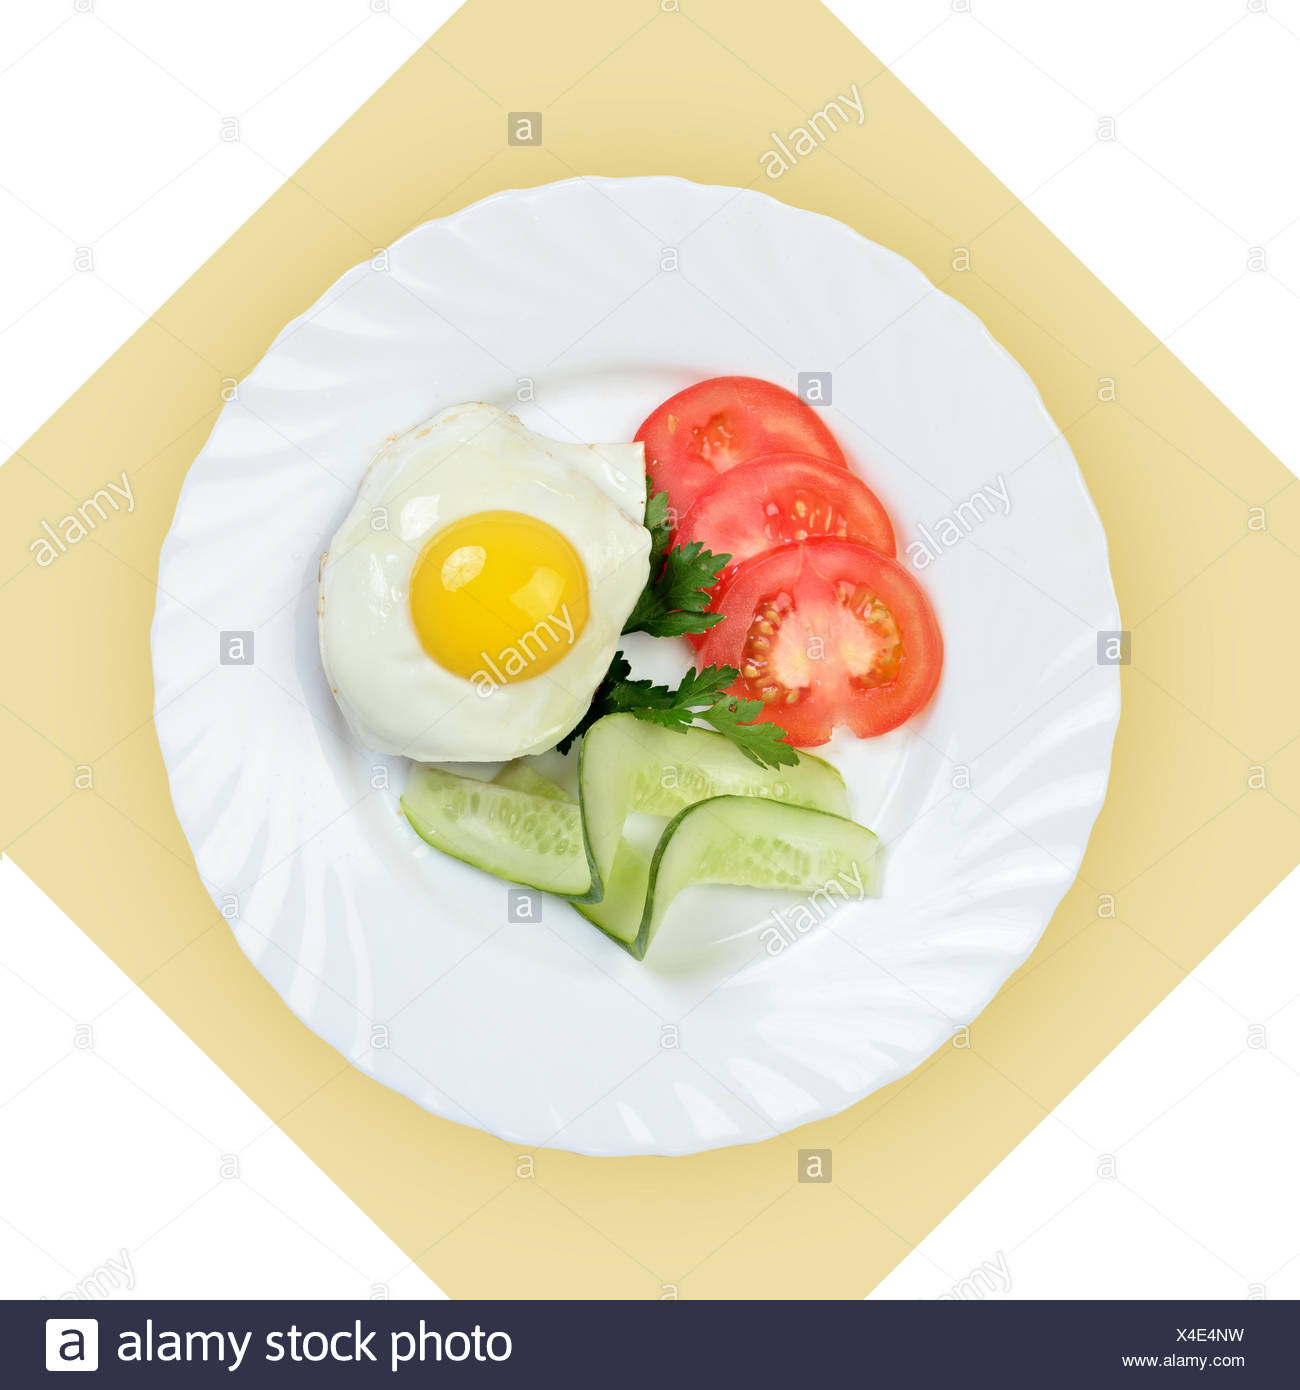 Dish of scrambled egg with vegetables on white plate. - Stock Image